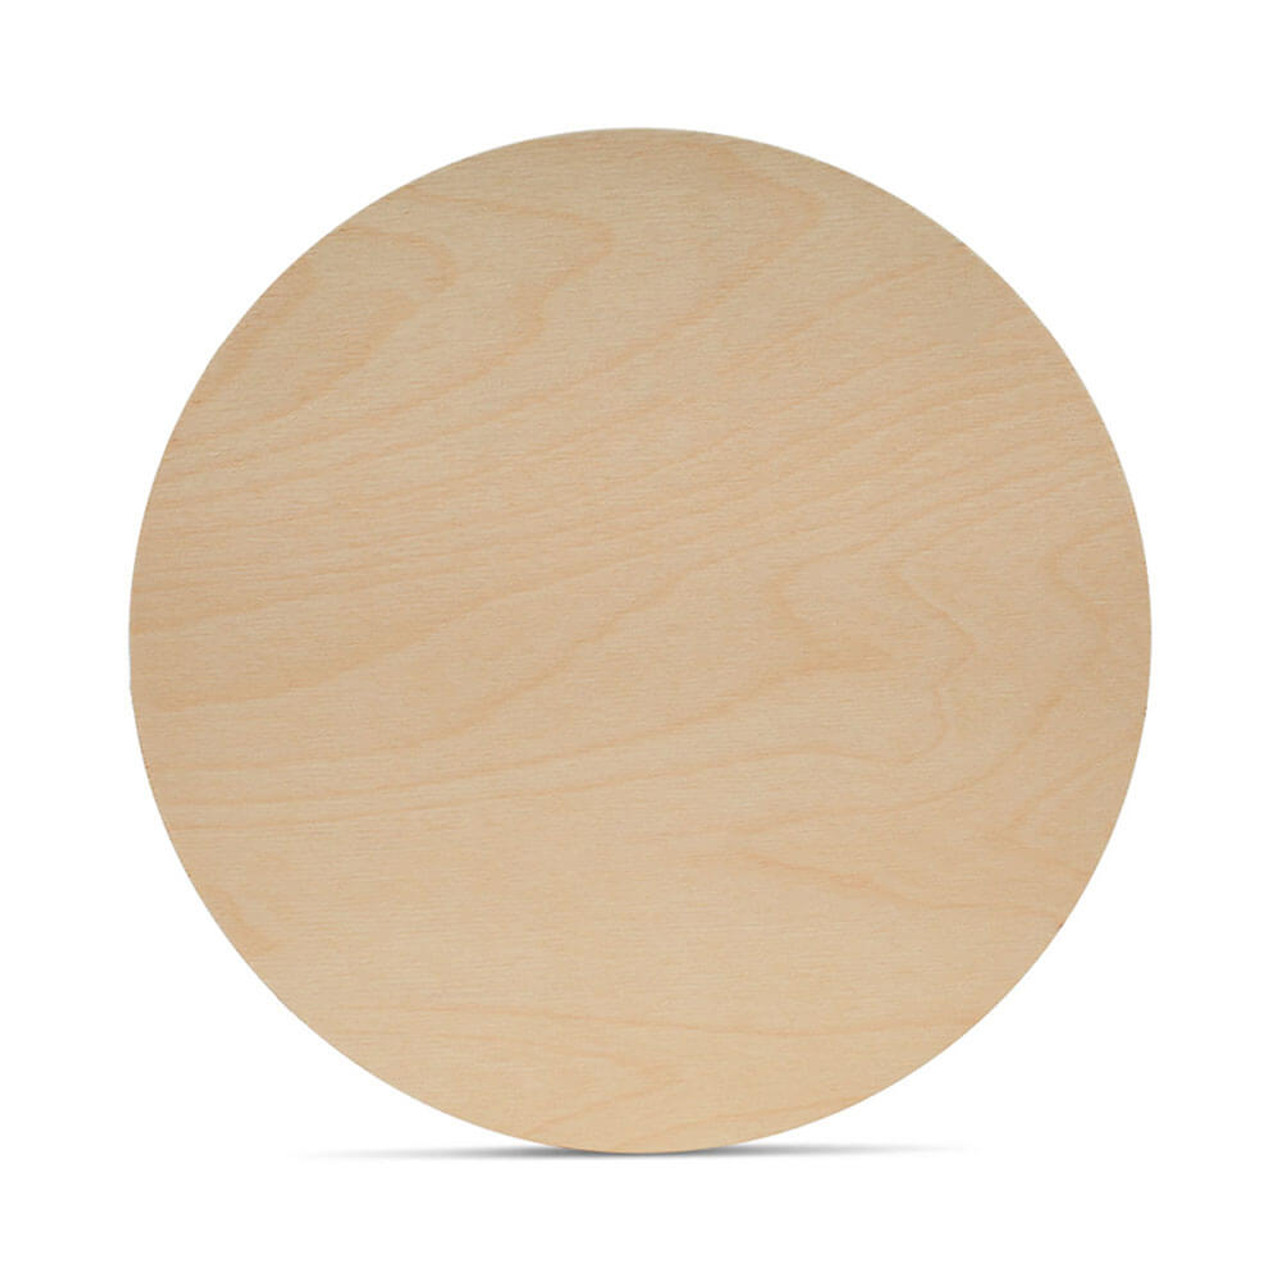 Wood Circles for Crafts 6 Inches in Diameter 12-Count Unfinished Wooden Round Disc Cutouts